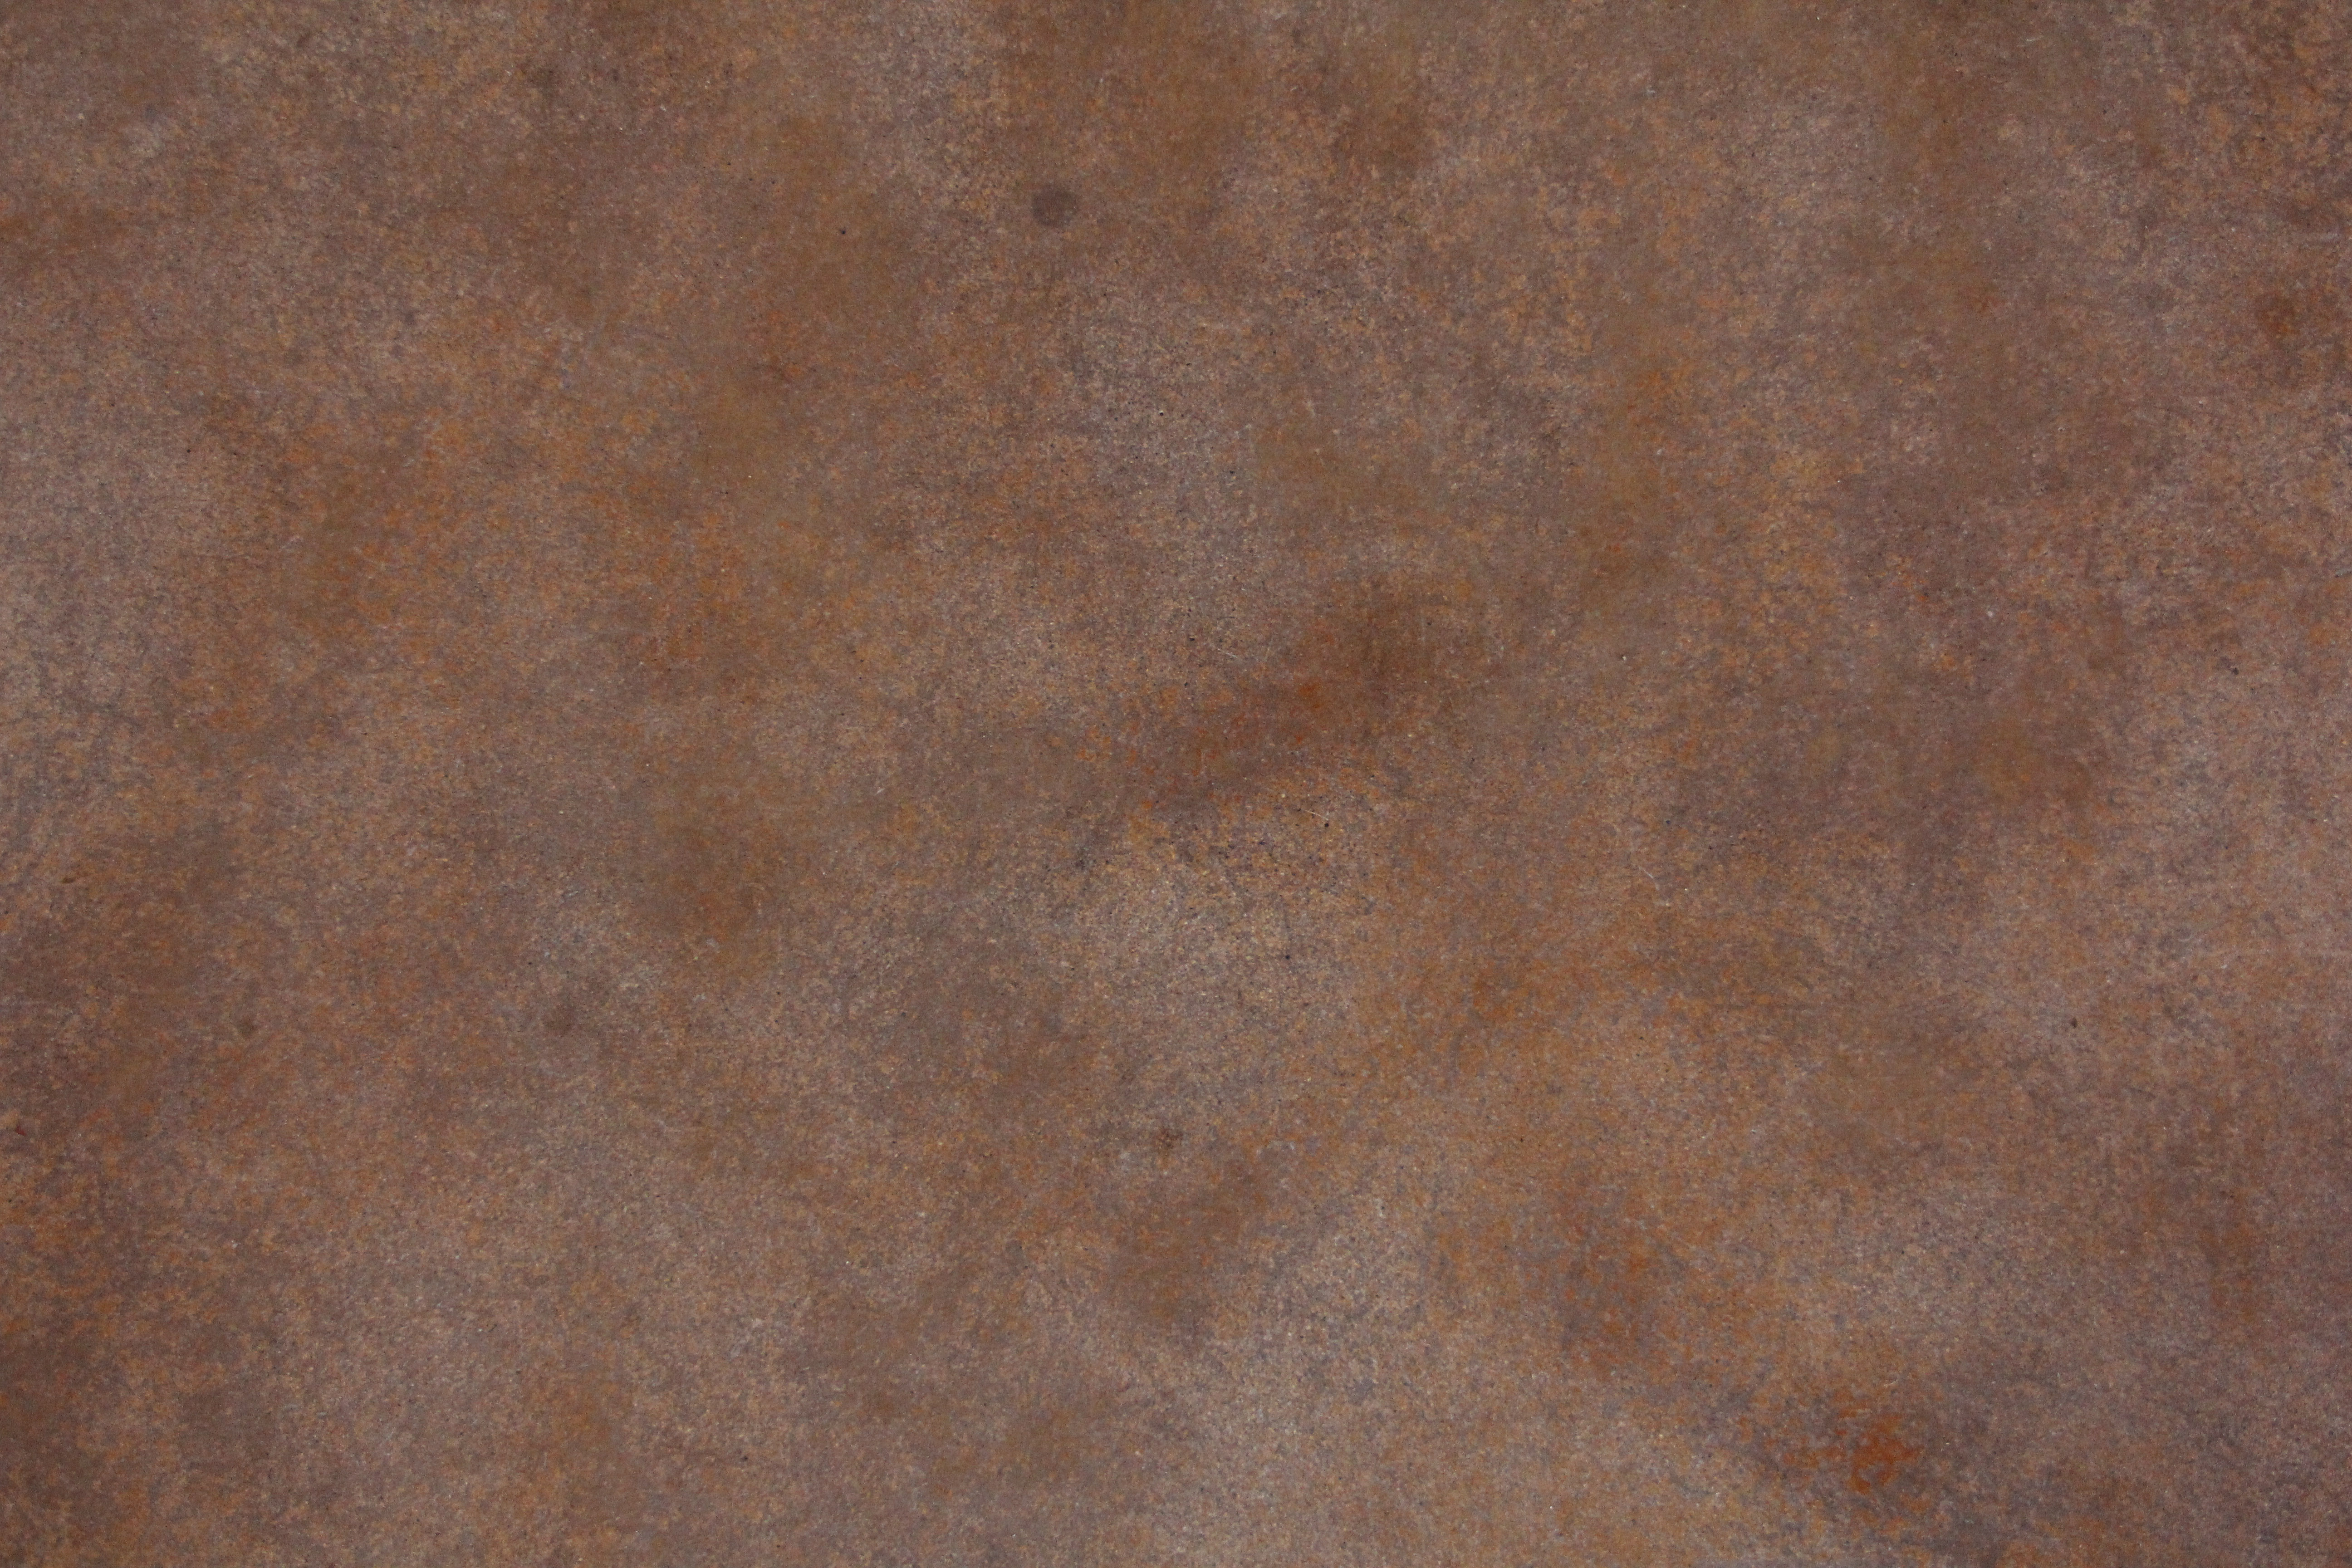 Brown Textured Concrete : Free photo stained concrete texture textured